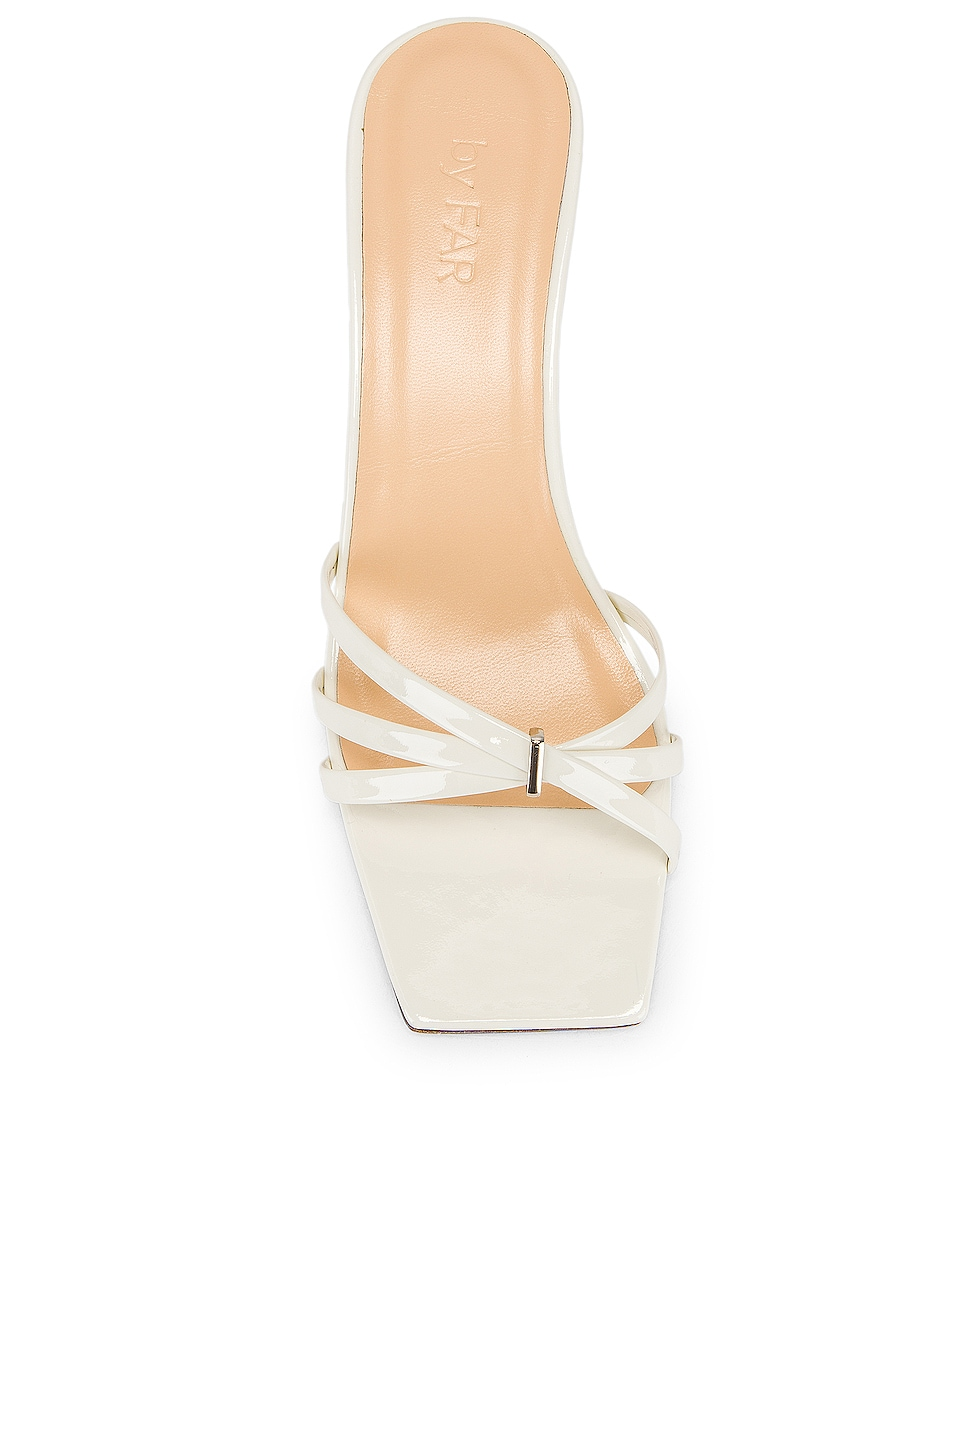 Image 4 of By Far Libra Sandal in White Patent Leather